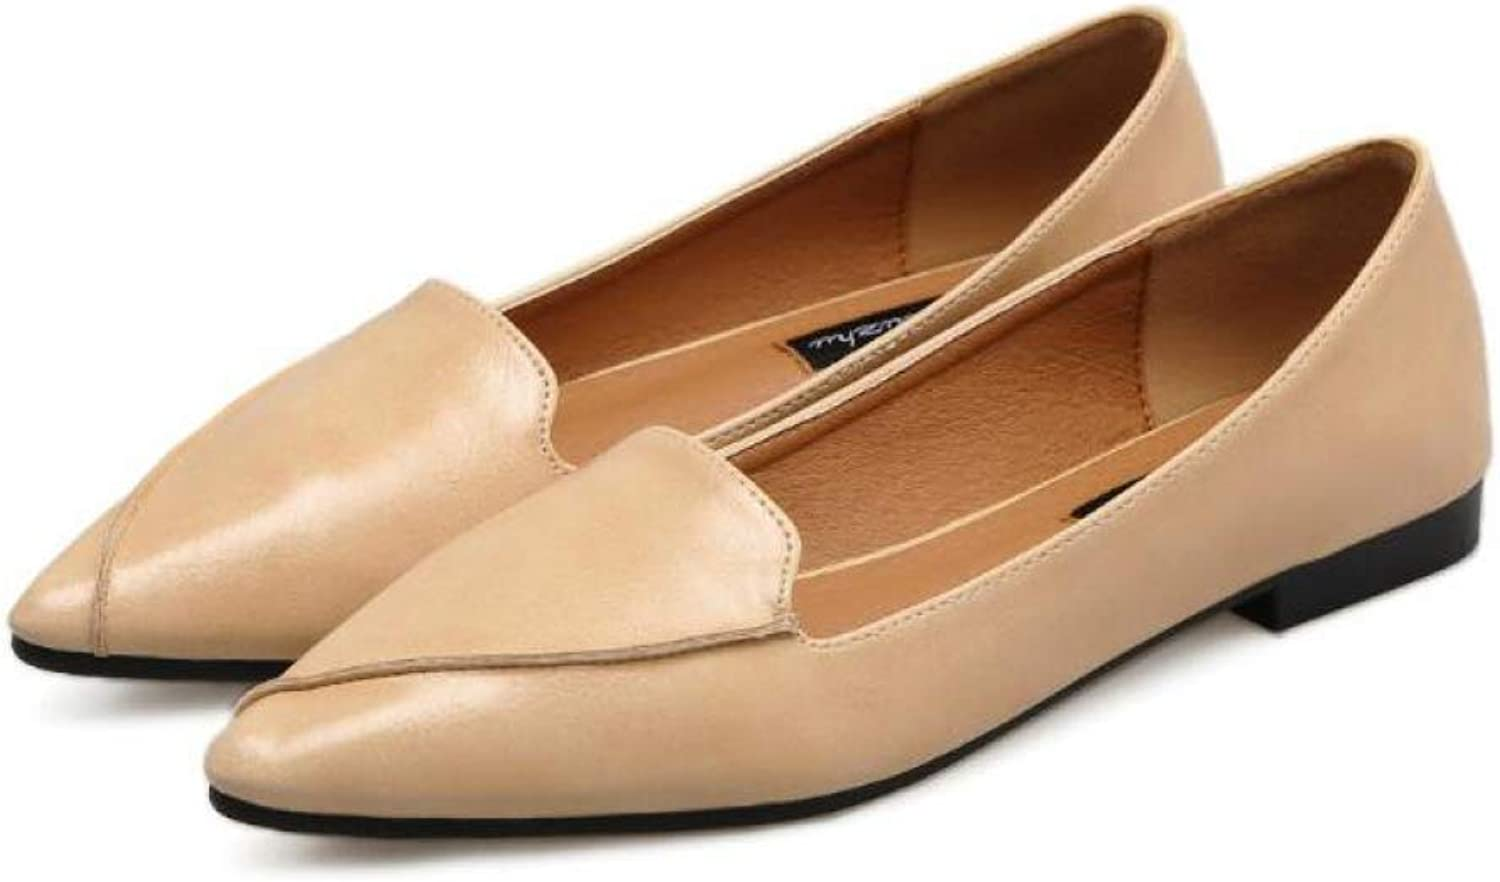 DETAIWIN Women Pointed Toe Ballet Loafers Slip On Comfort Party Faux Leather Ladies Fashion Flats Dress shoes